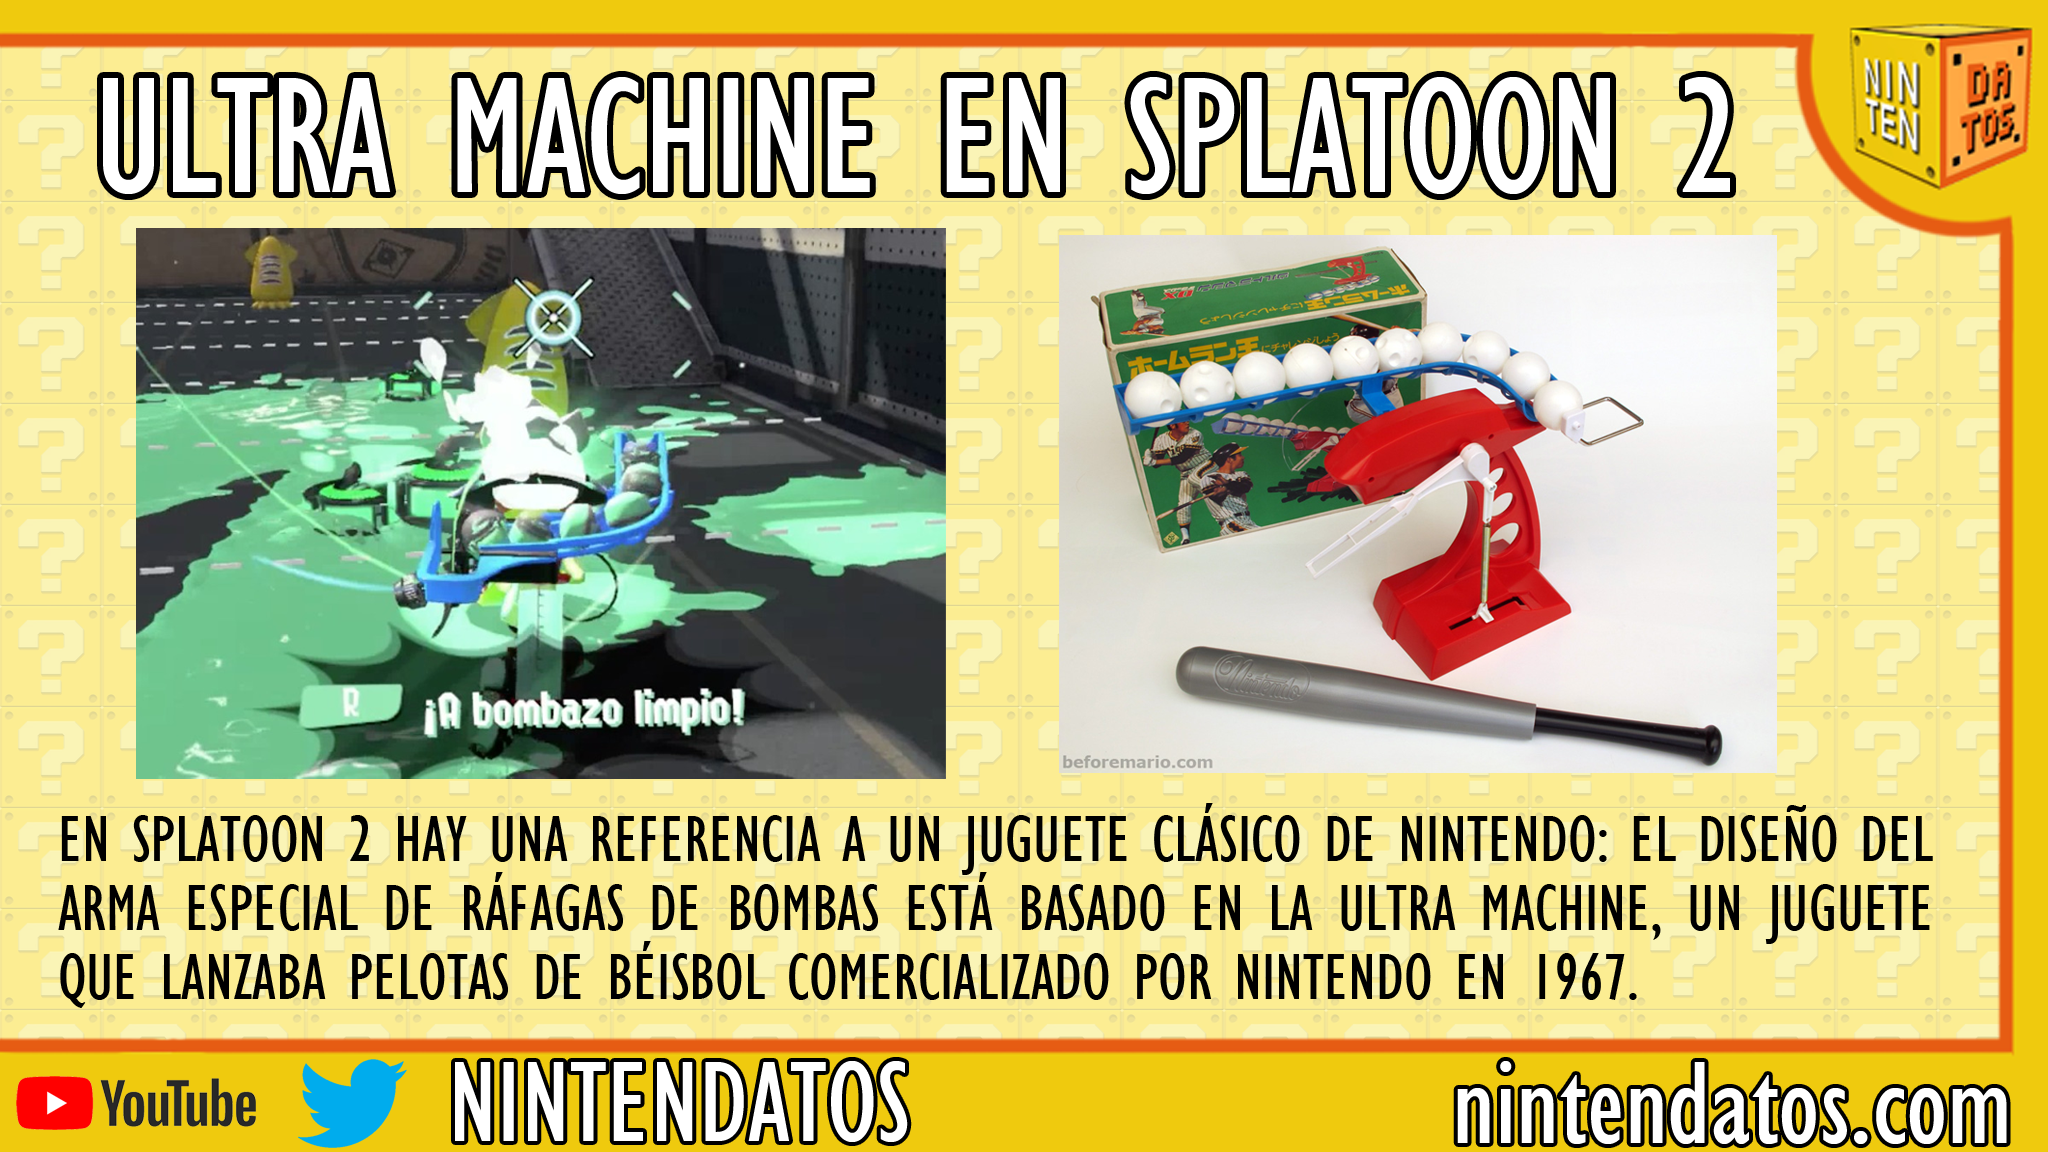 Ultra Machine en Splatoon 2